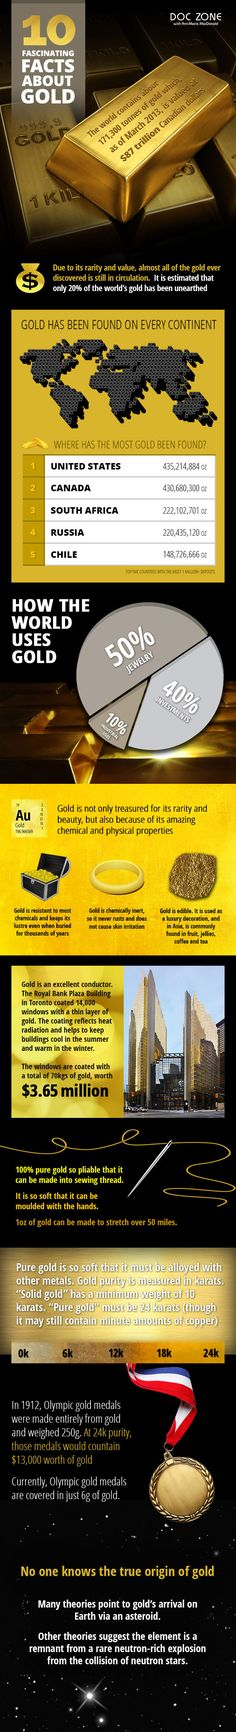 http://www.karatbars.com/?s=mauricer - 10 fascinating facts about gold. Check out this gold infographic to learn why gold is cherished across the globe.